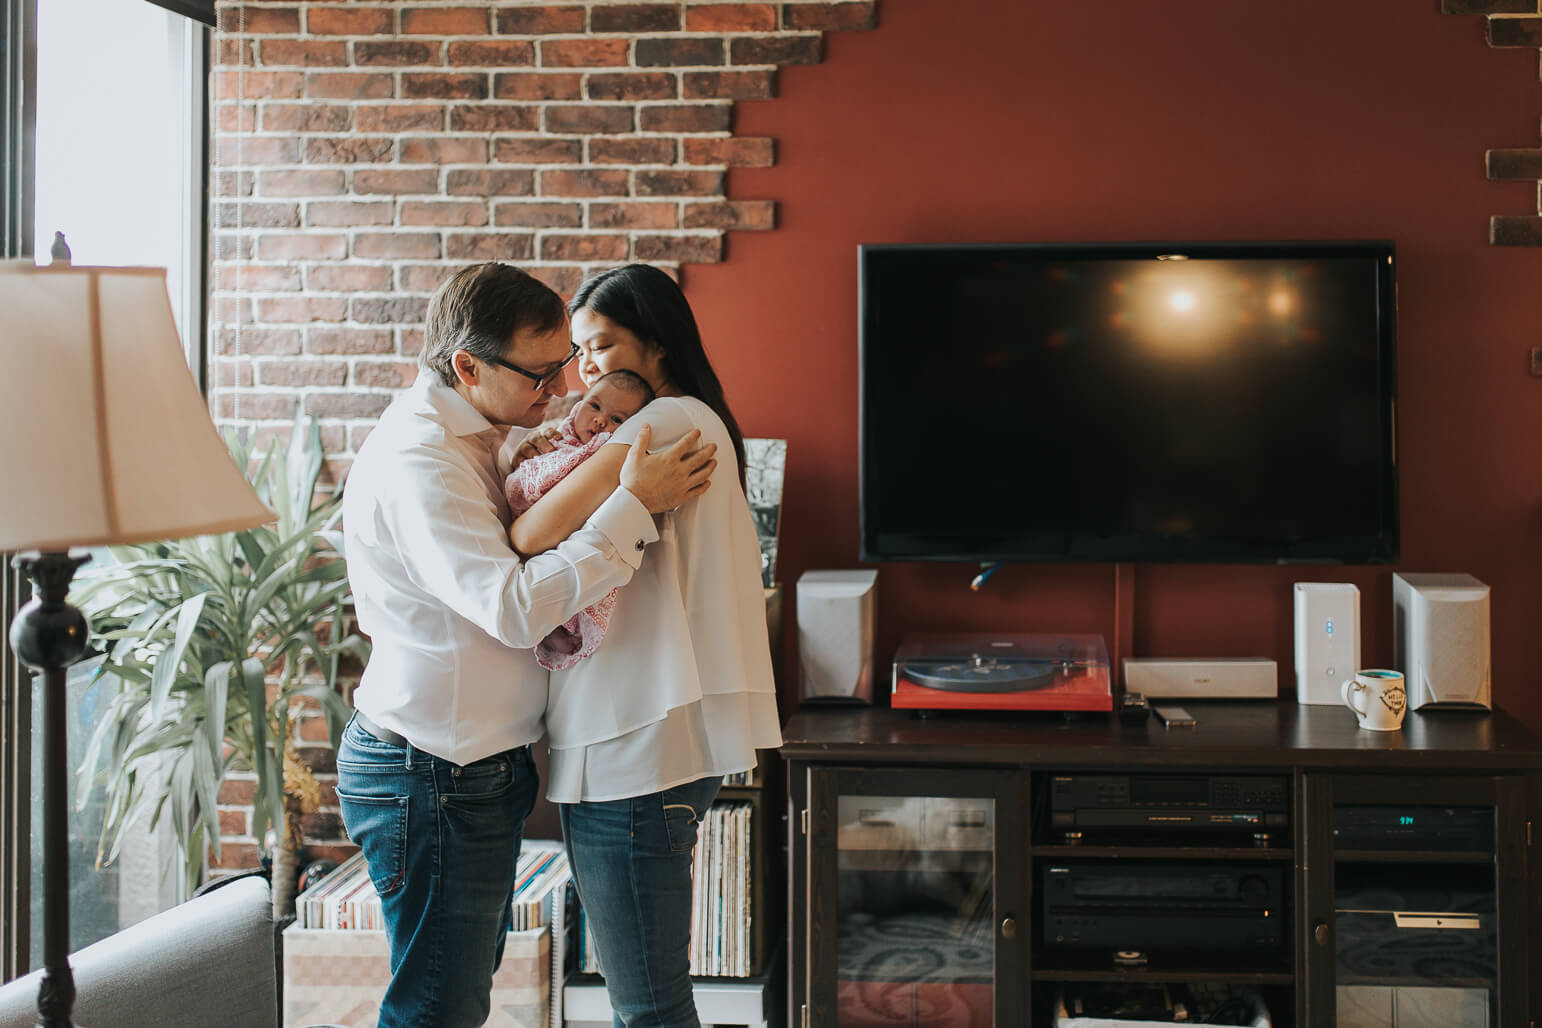 Mom and dad cuddling baby in their home during lifestyle shoot